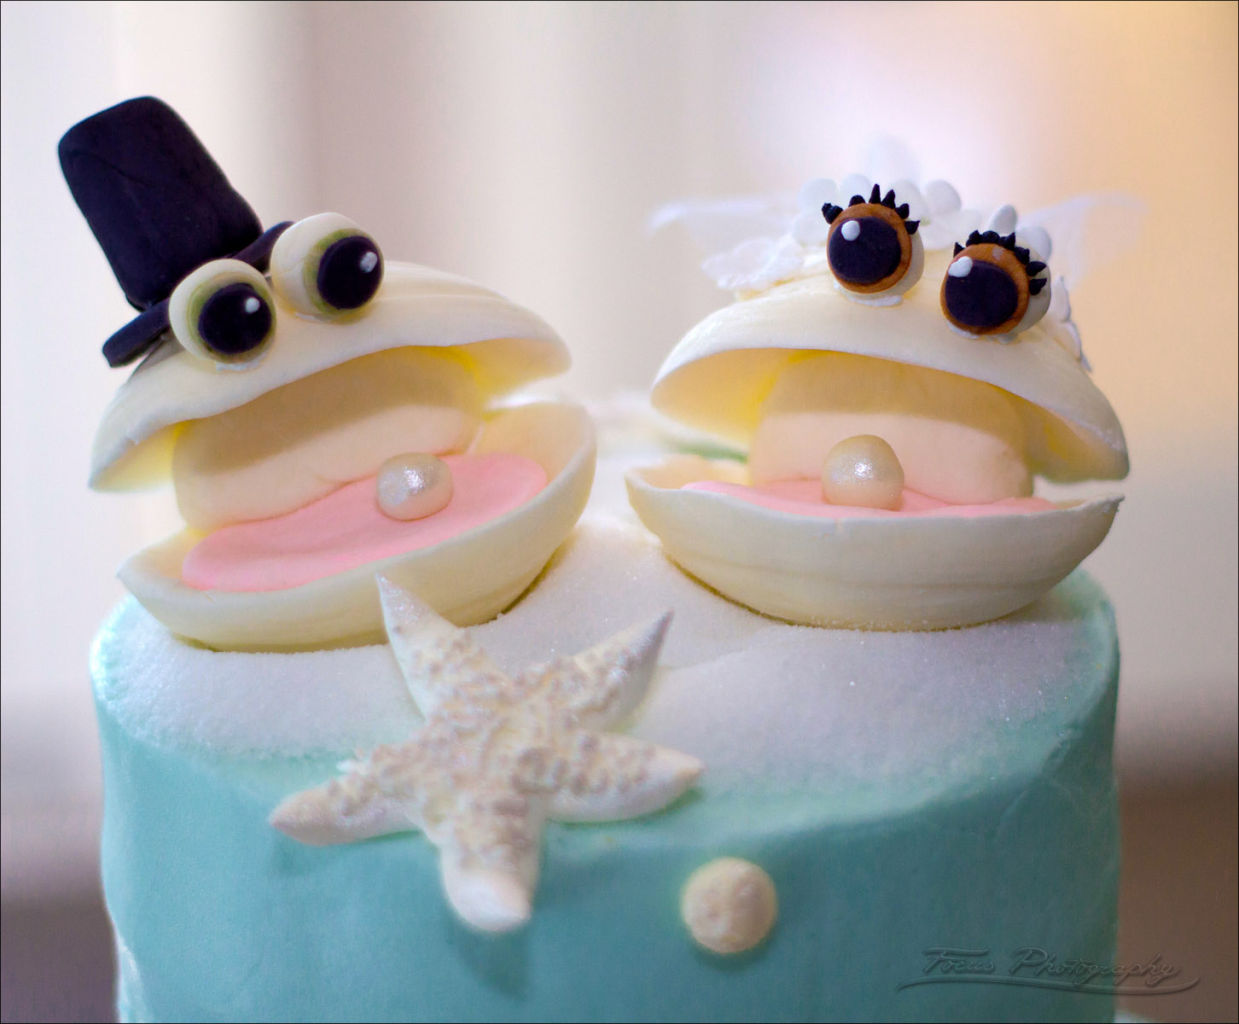 wedding cake toppers of bride and groom oysters with pearls in the shell